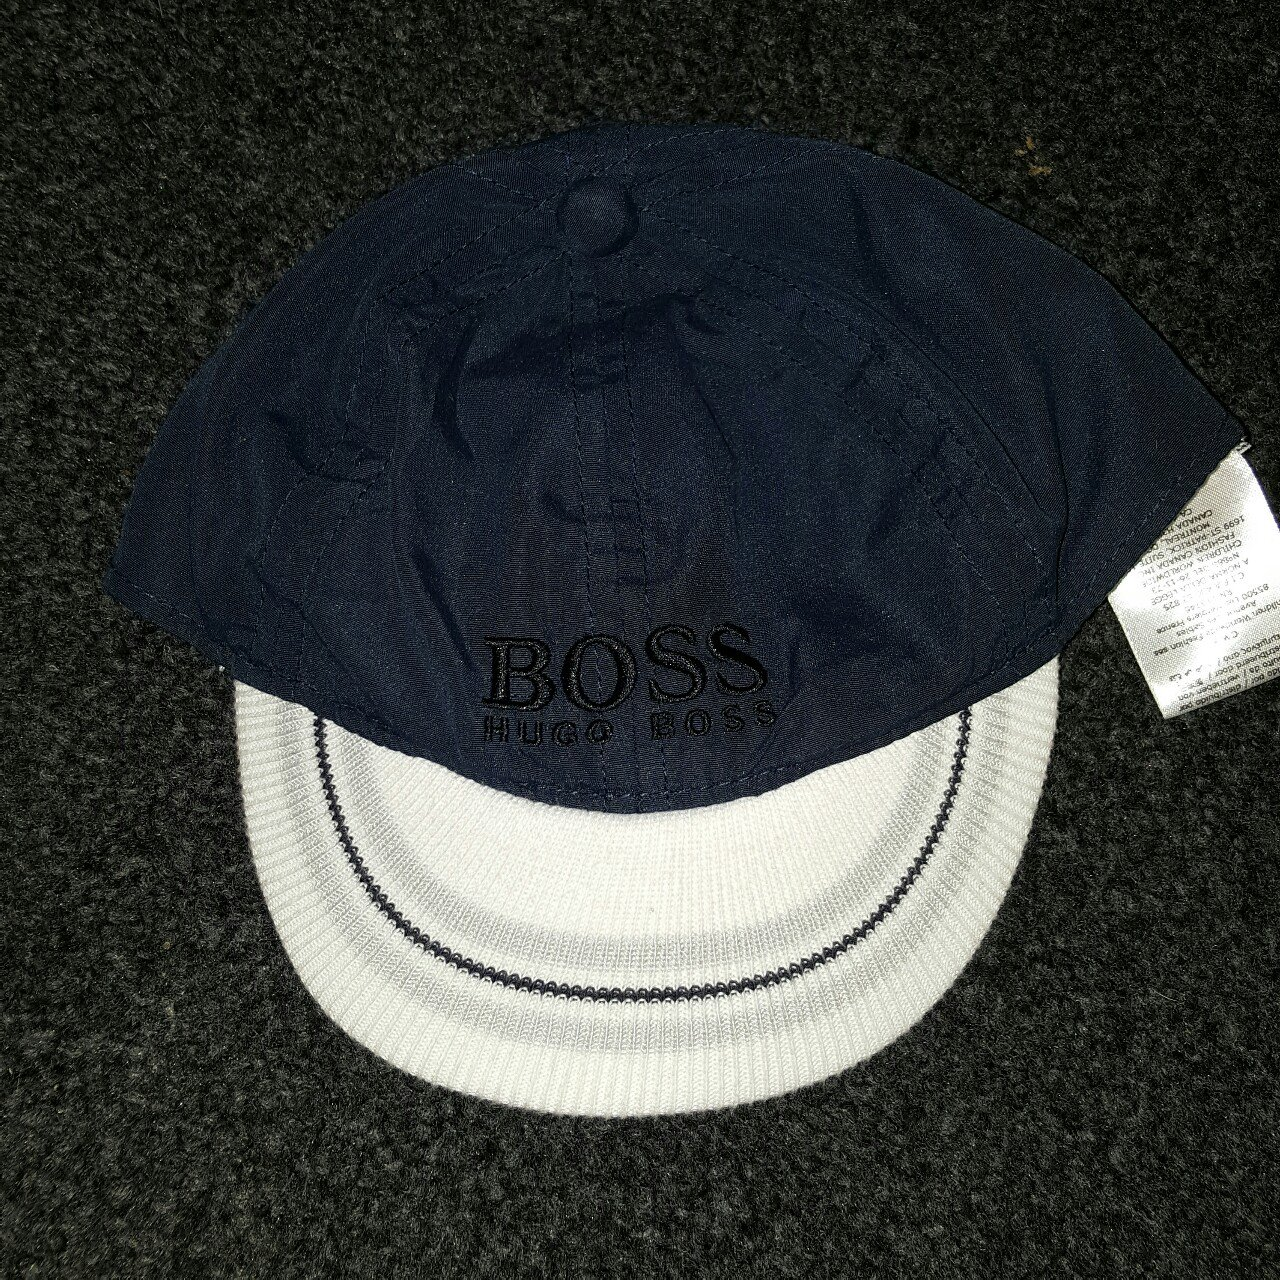 5c3e58196d7 Genuine baby boy hugo boss hat Immaculate condition Size x - Depop